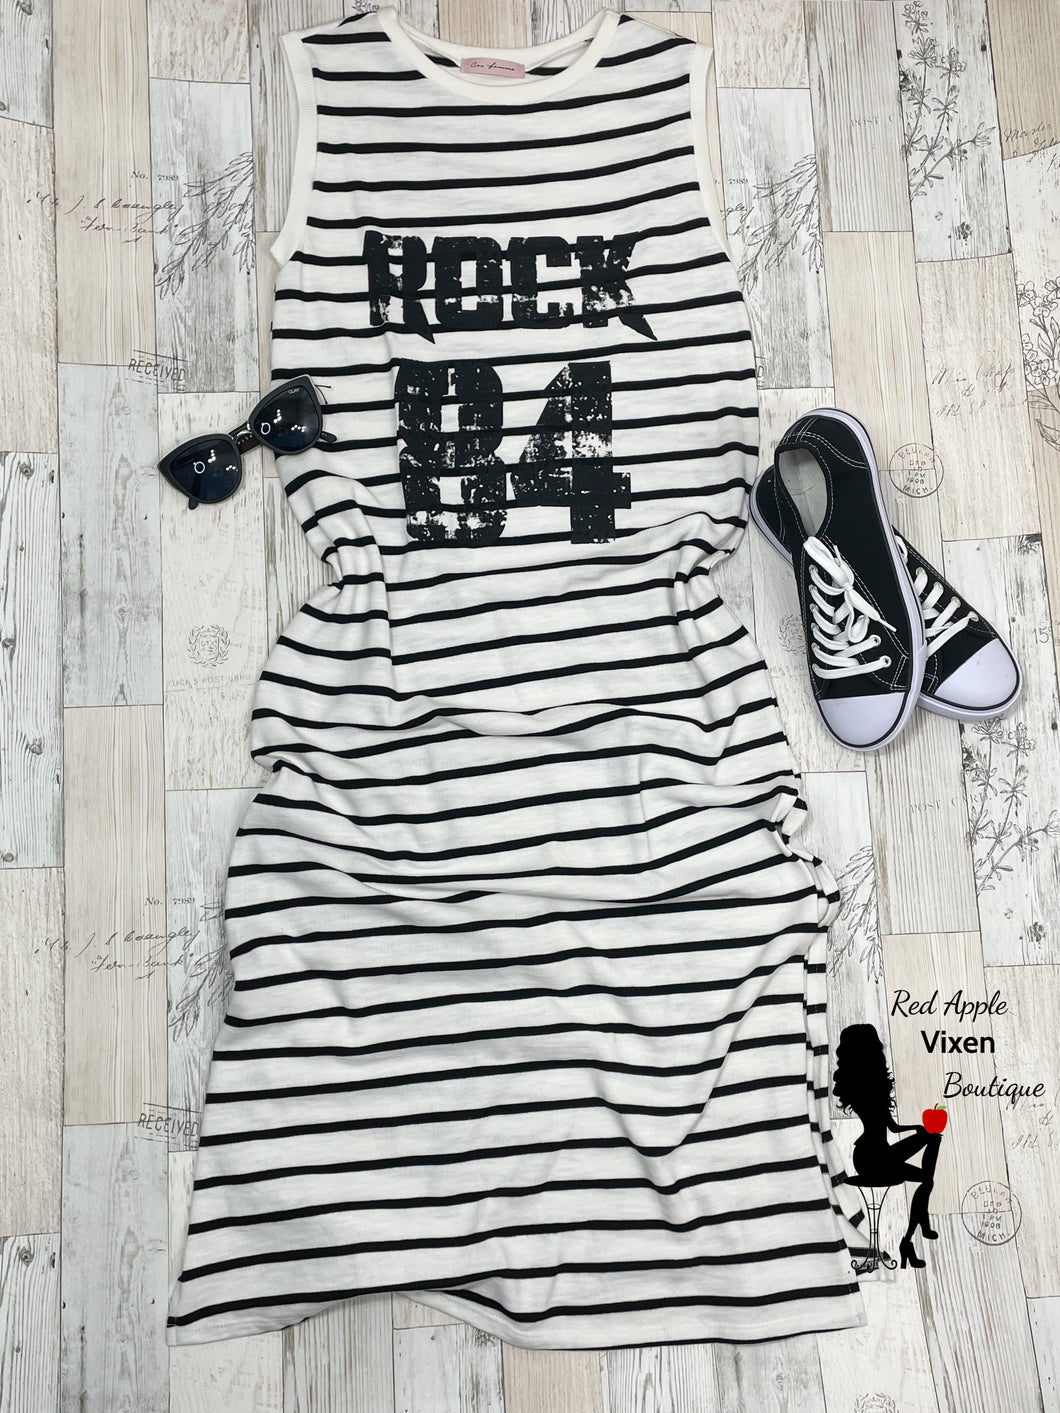 Black and White Striped Maxi Dress - Red Apple Vixen Boutique